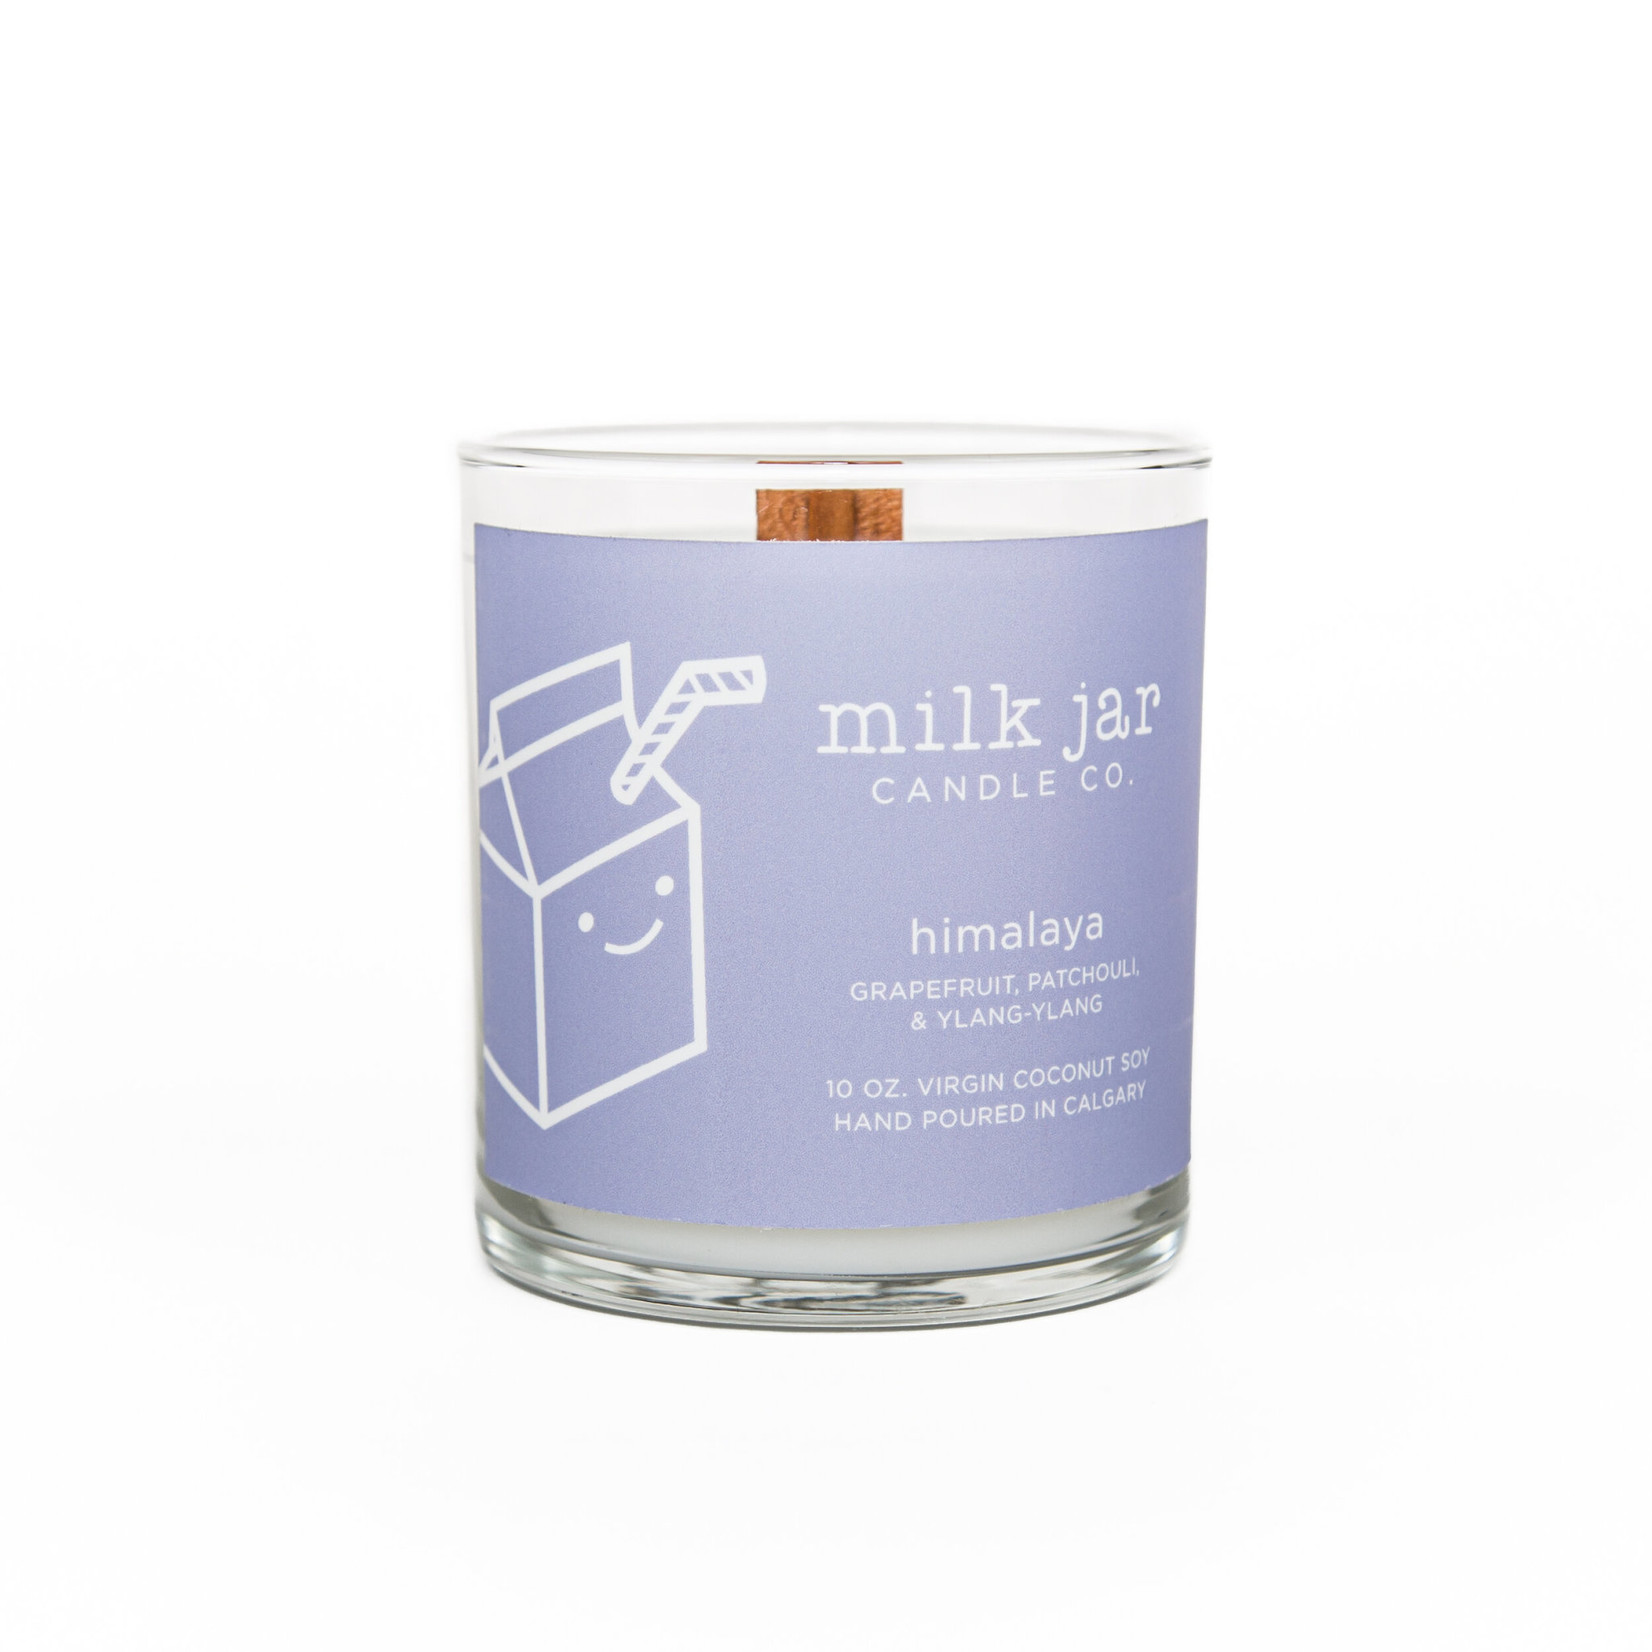 MILK JAR CANDLE CO. HIMILAYA ESSENTIAL OIL CANDLE